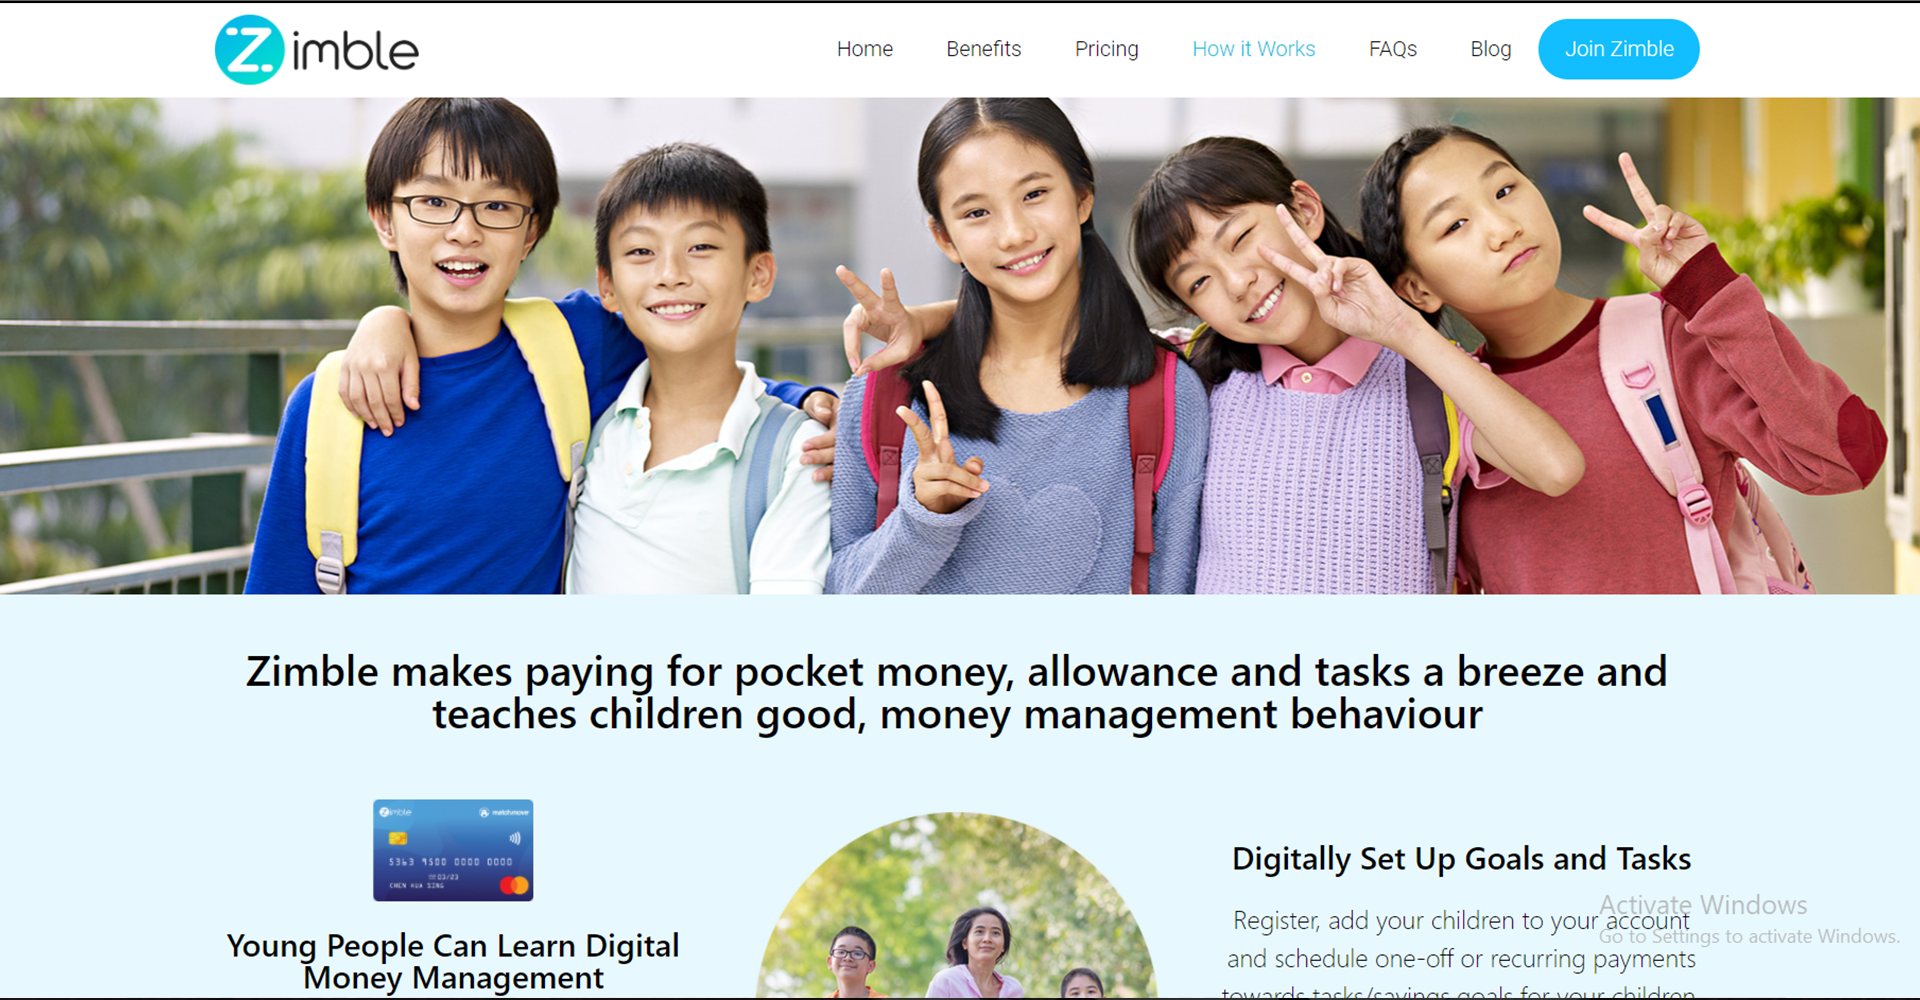 Zimble how it works Page